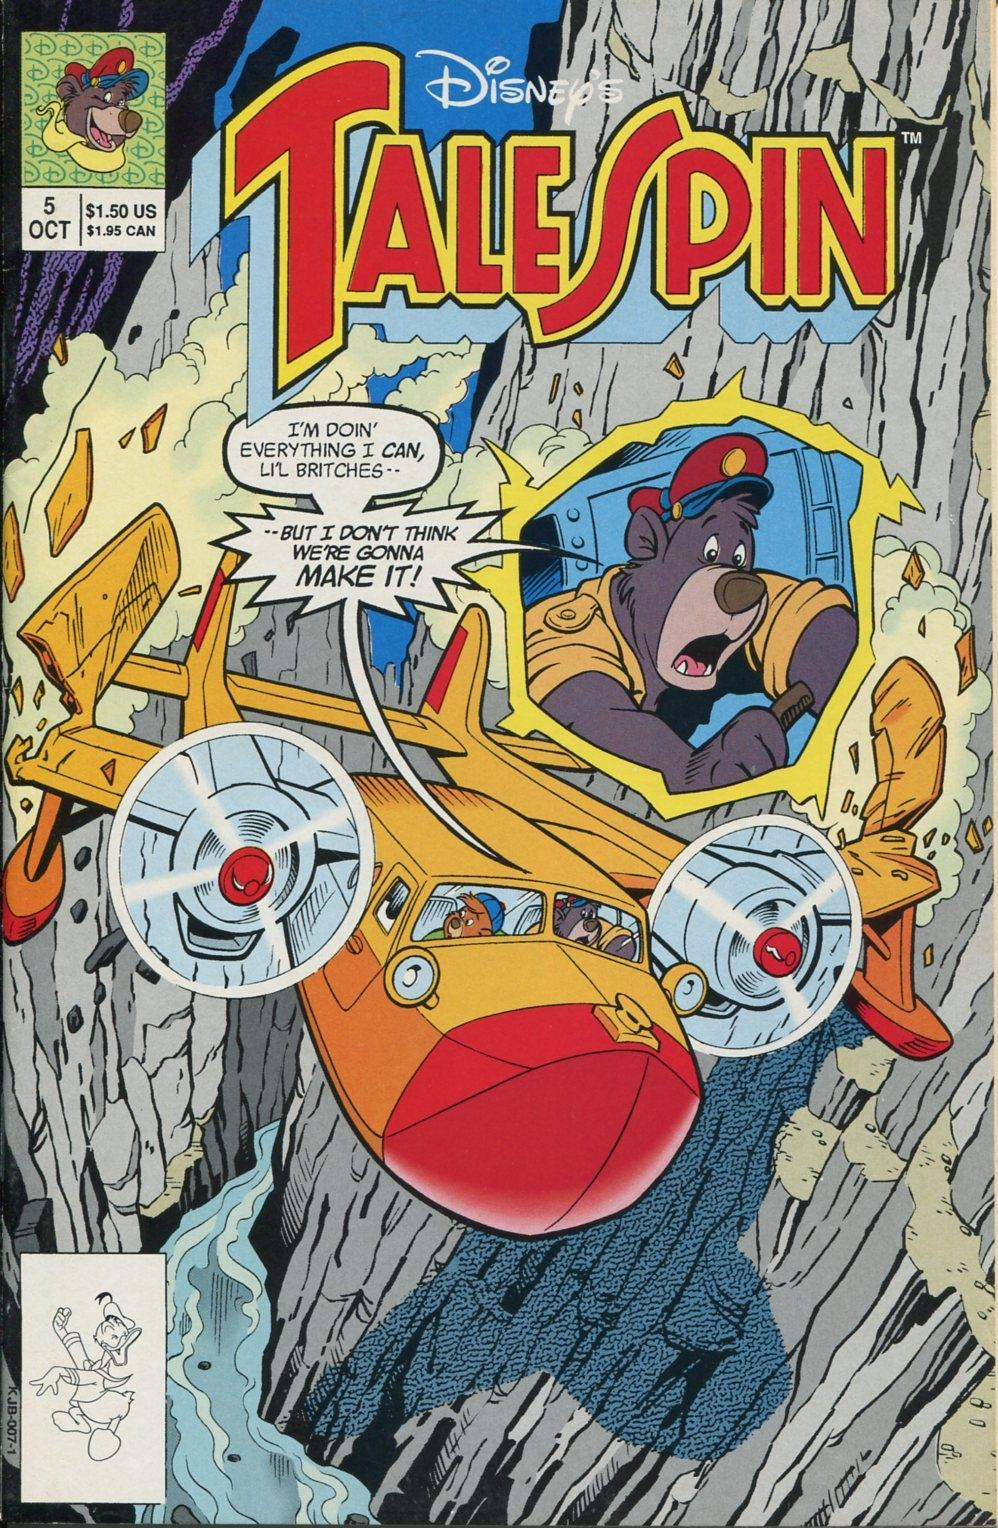 Read online Disney's Tale Spin comic -  Issue #5 - 1